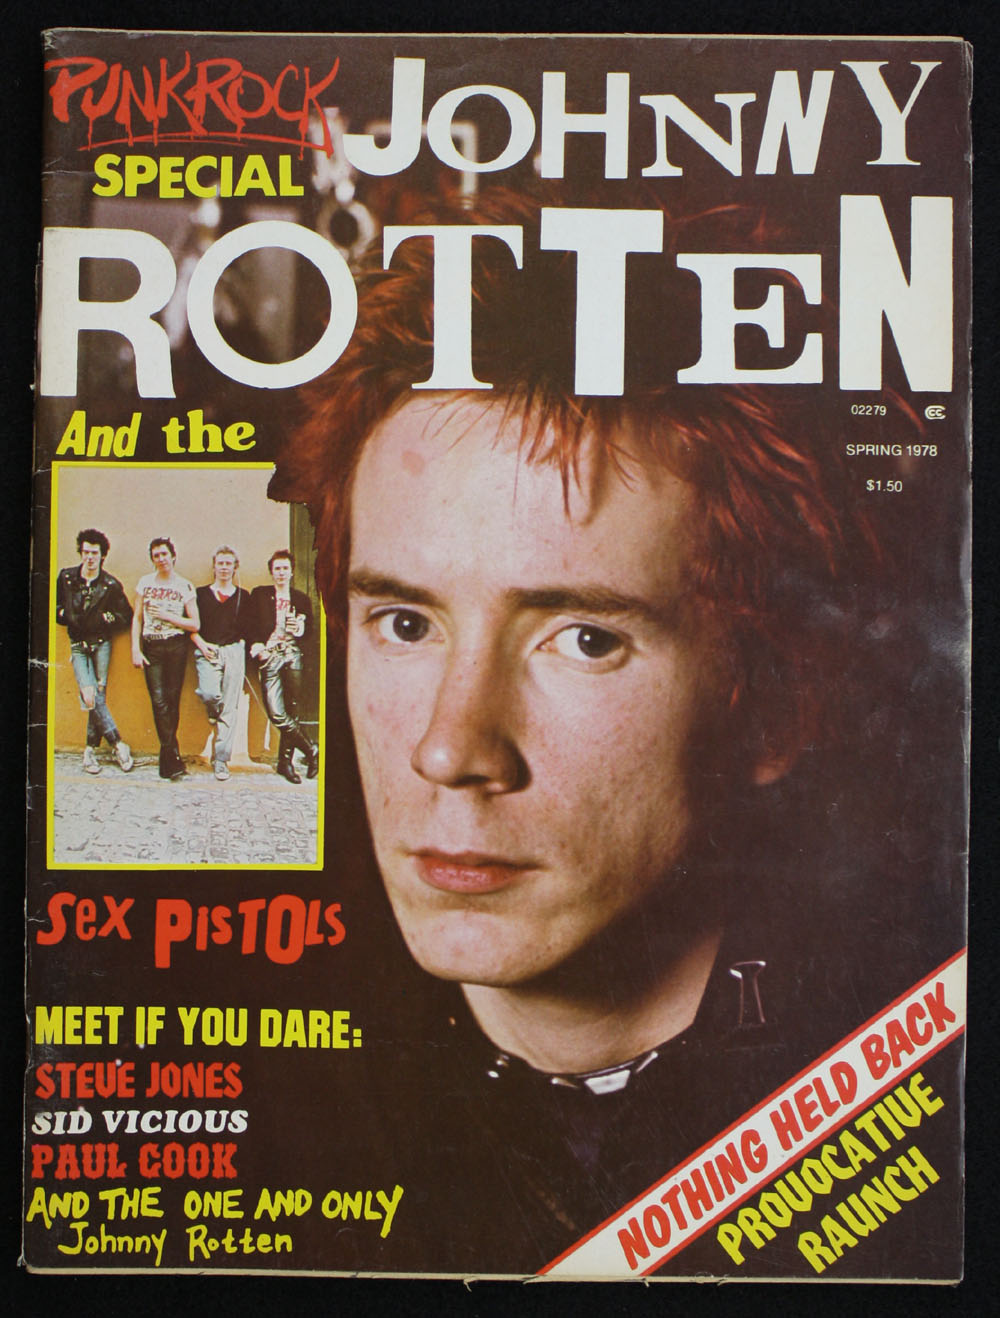 PUNK ROCK SPECIAL: Johnny Rotten and the Sex Pistols